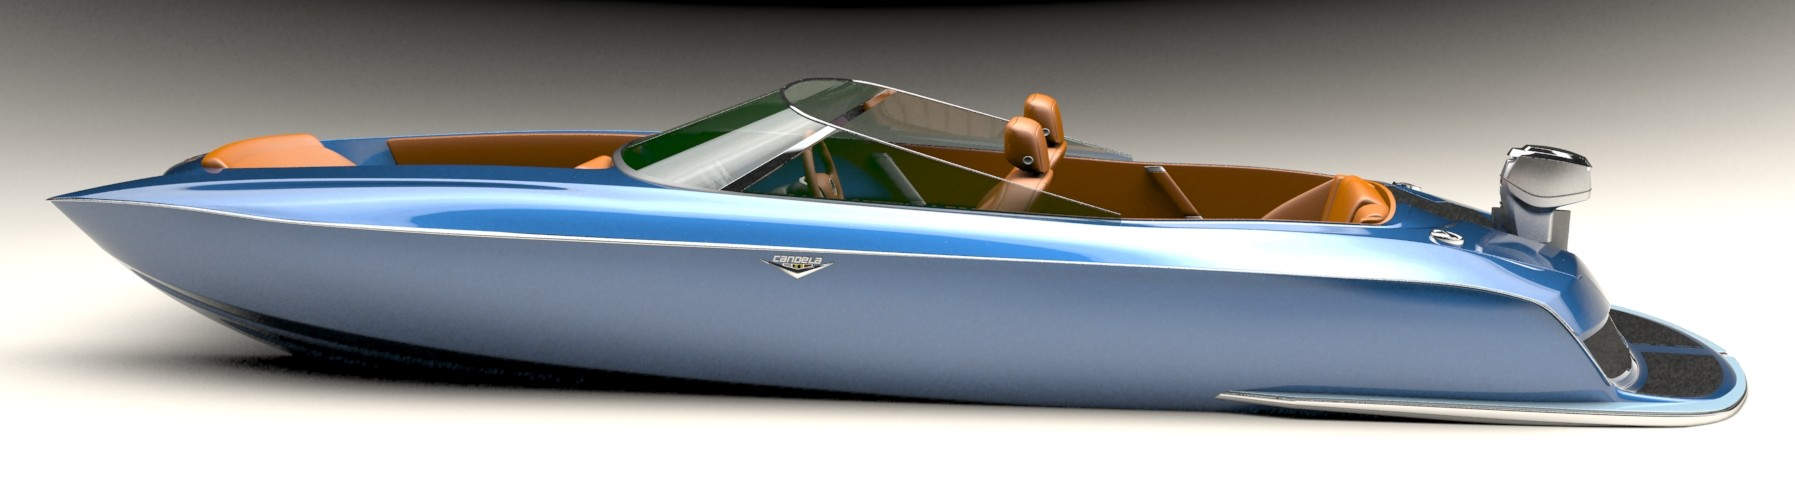 The Candela motorboat. This is a computer render...